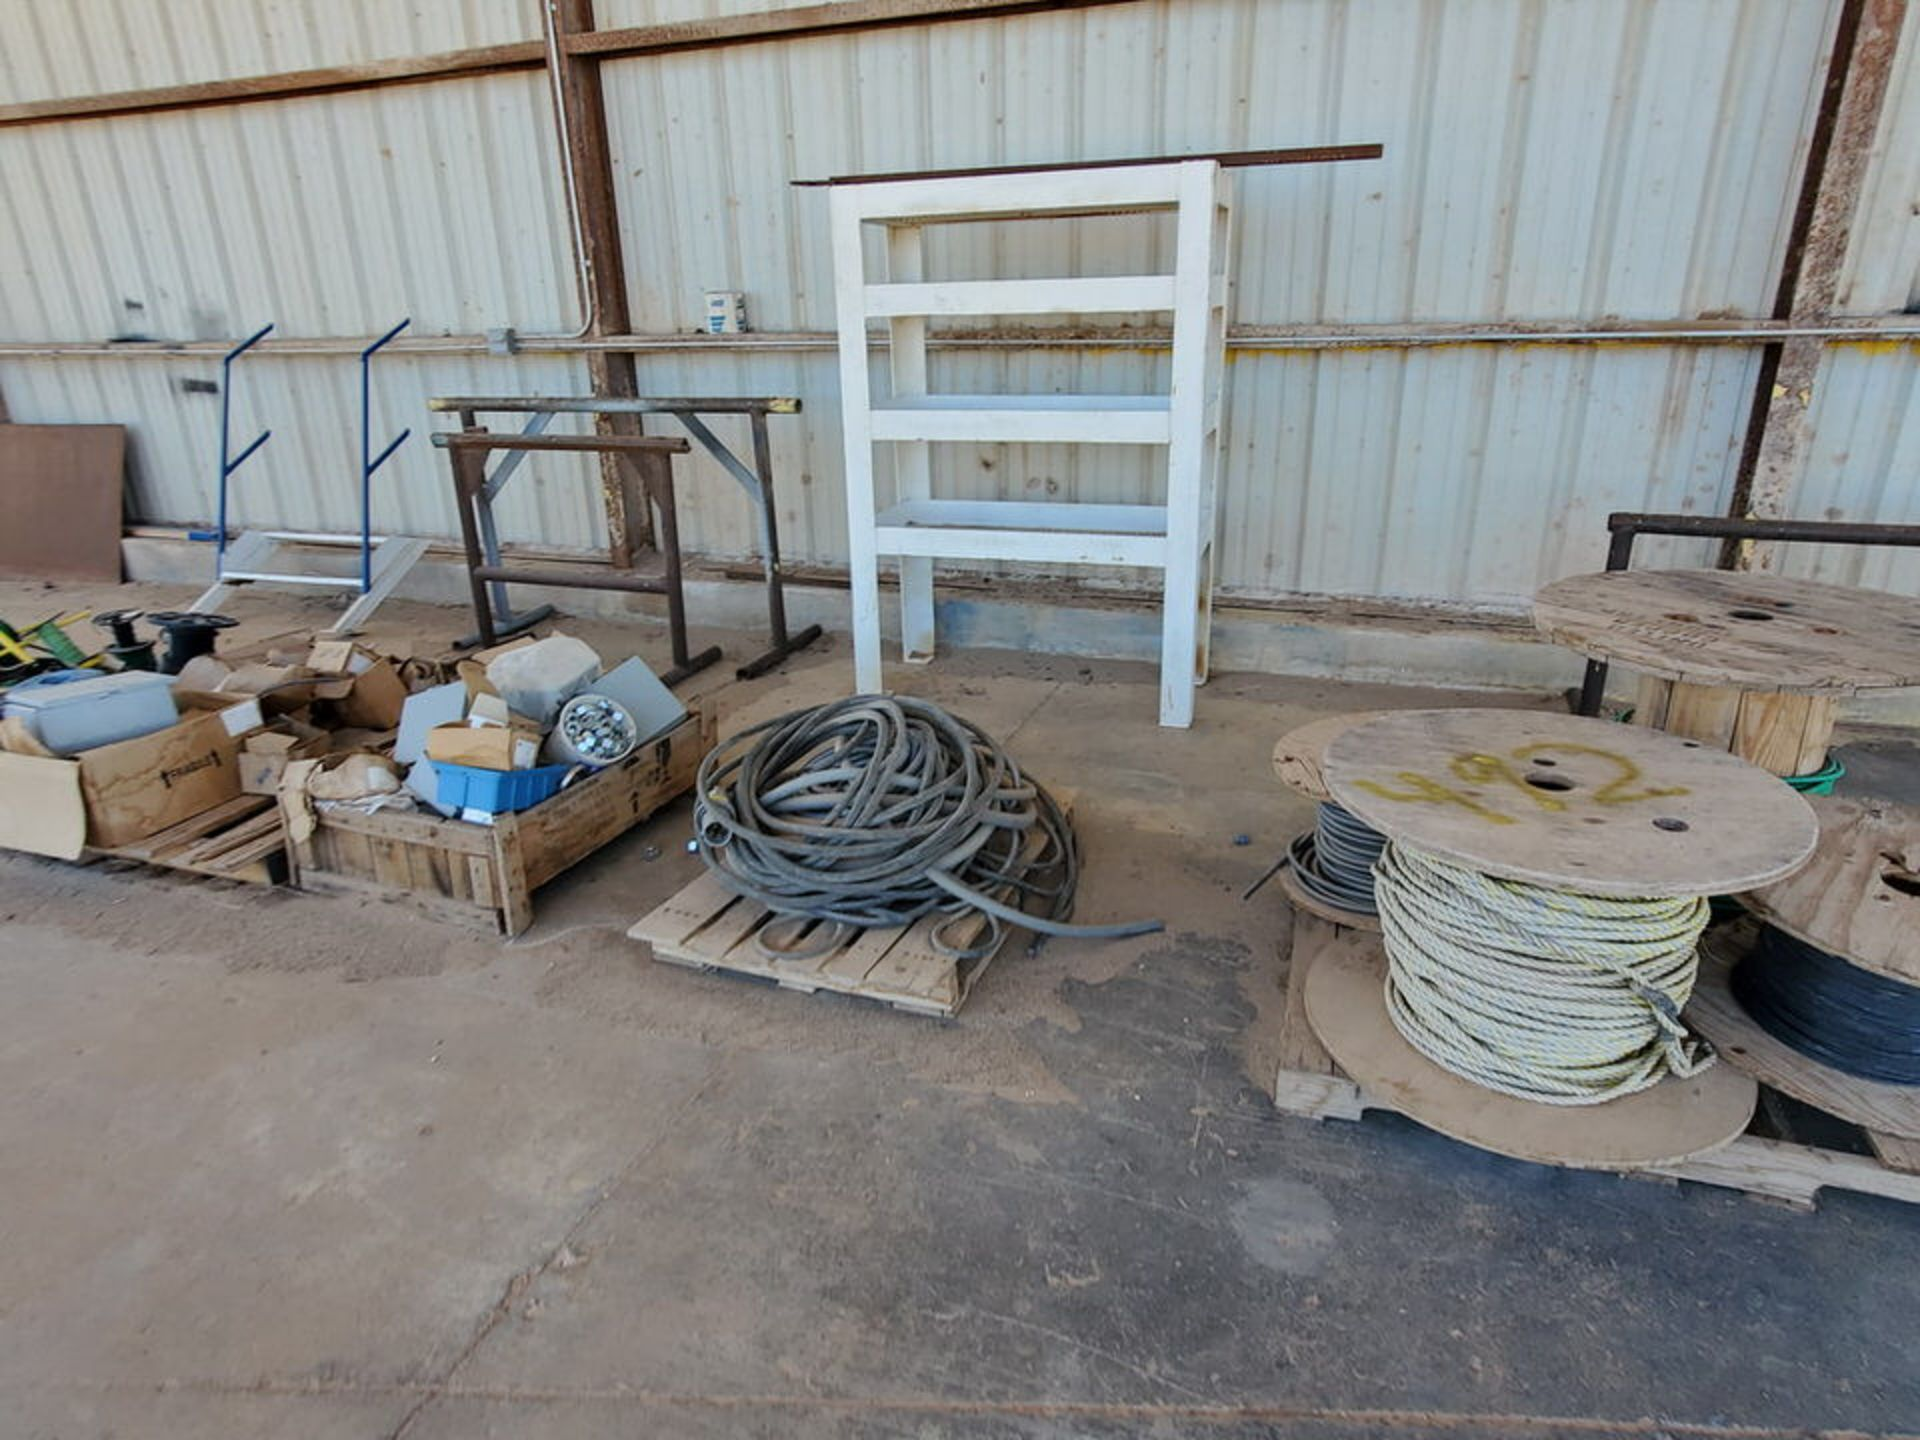 Misc. Matl. To Include But Not Limited To: Lift Basket, Welding Table, Sheet Metal, Ele Wire, Rope - Image 6 of 13